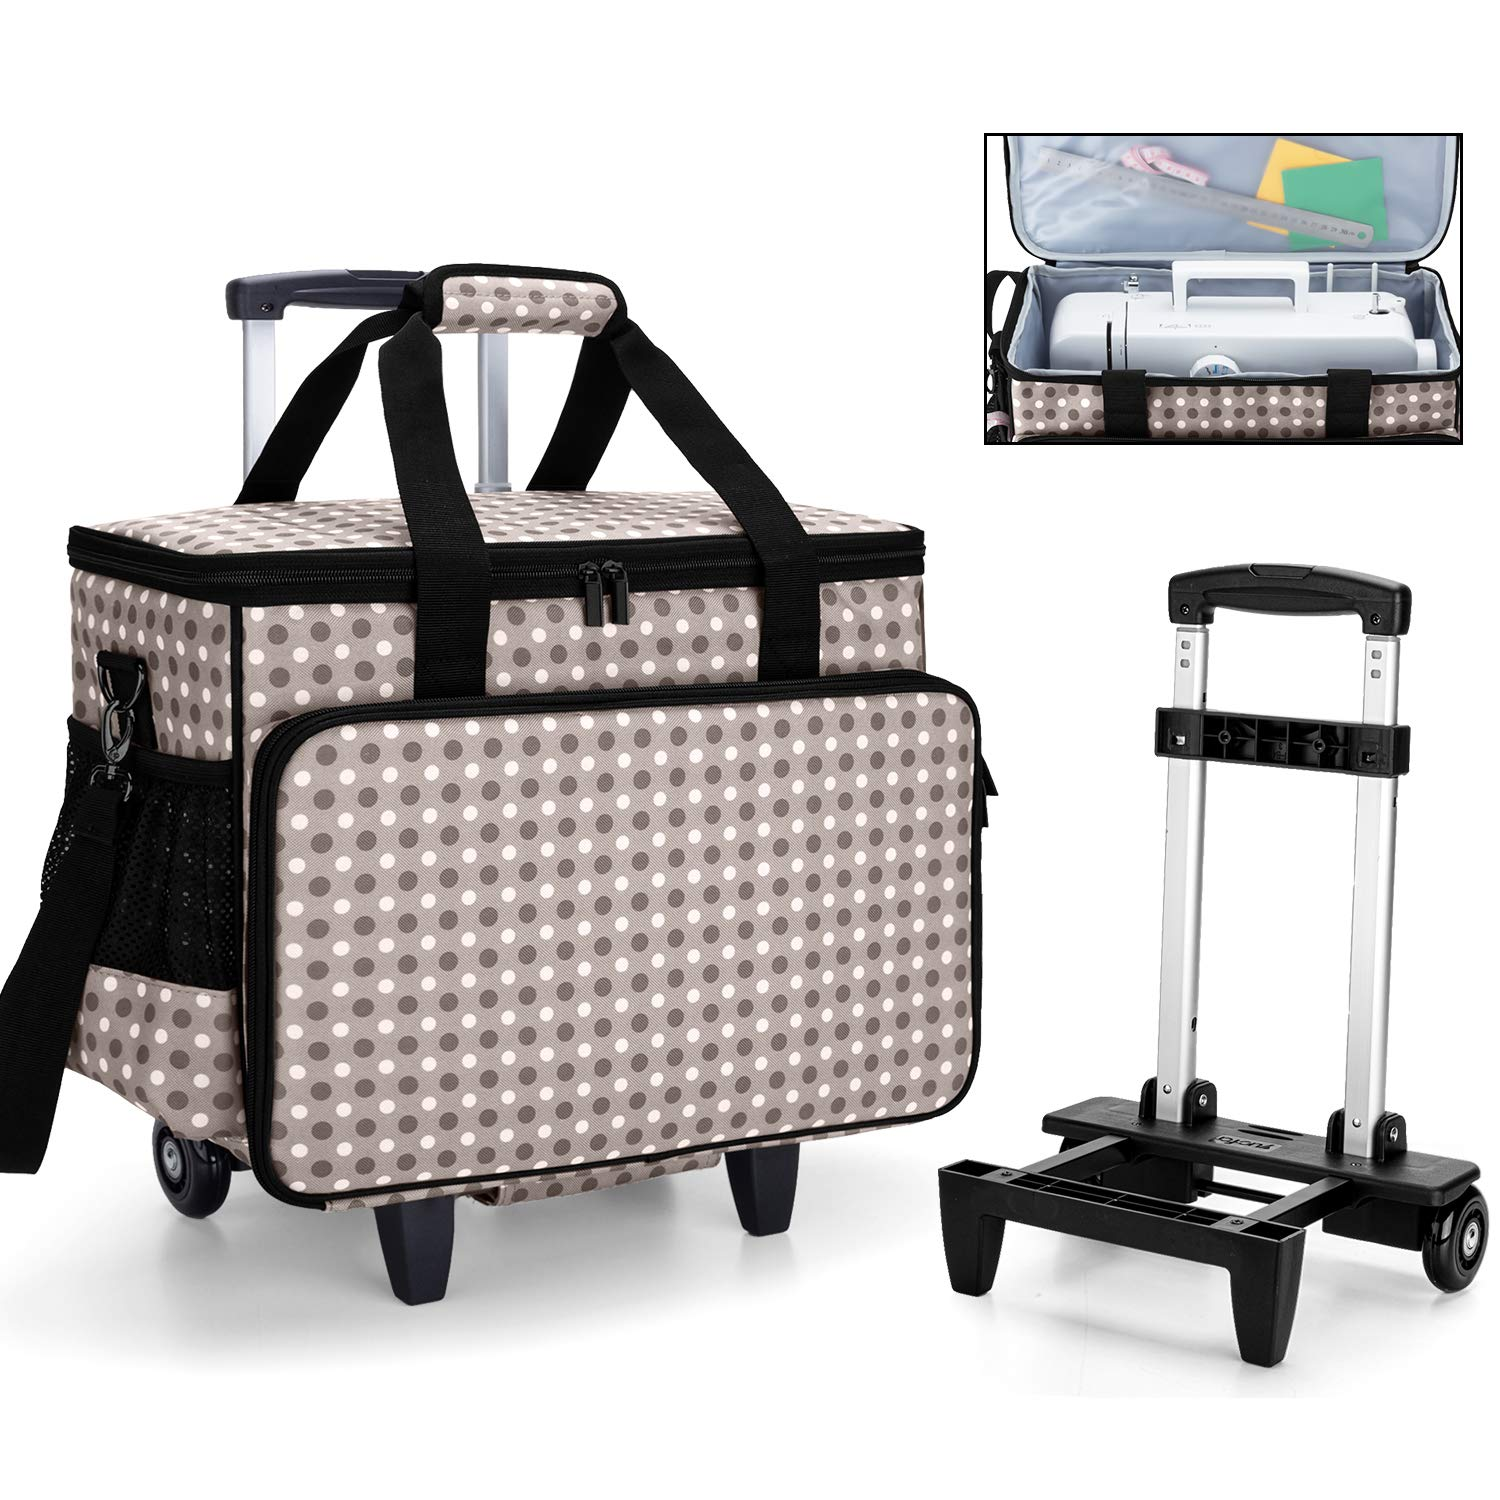 Yarwo Detachable Rolling Sewing Machine Carrying Case Trolley Tote Bag with Removable Bottom Wooden Board for Most Standard Sewing Machine and Accessoriess Purple